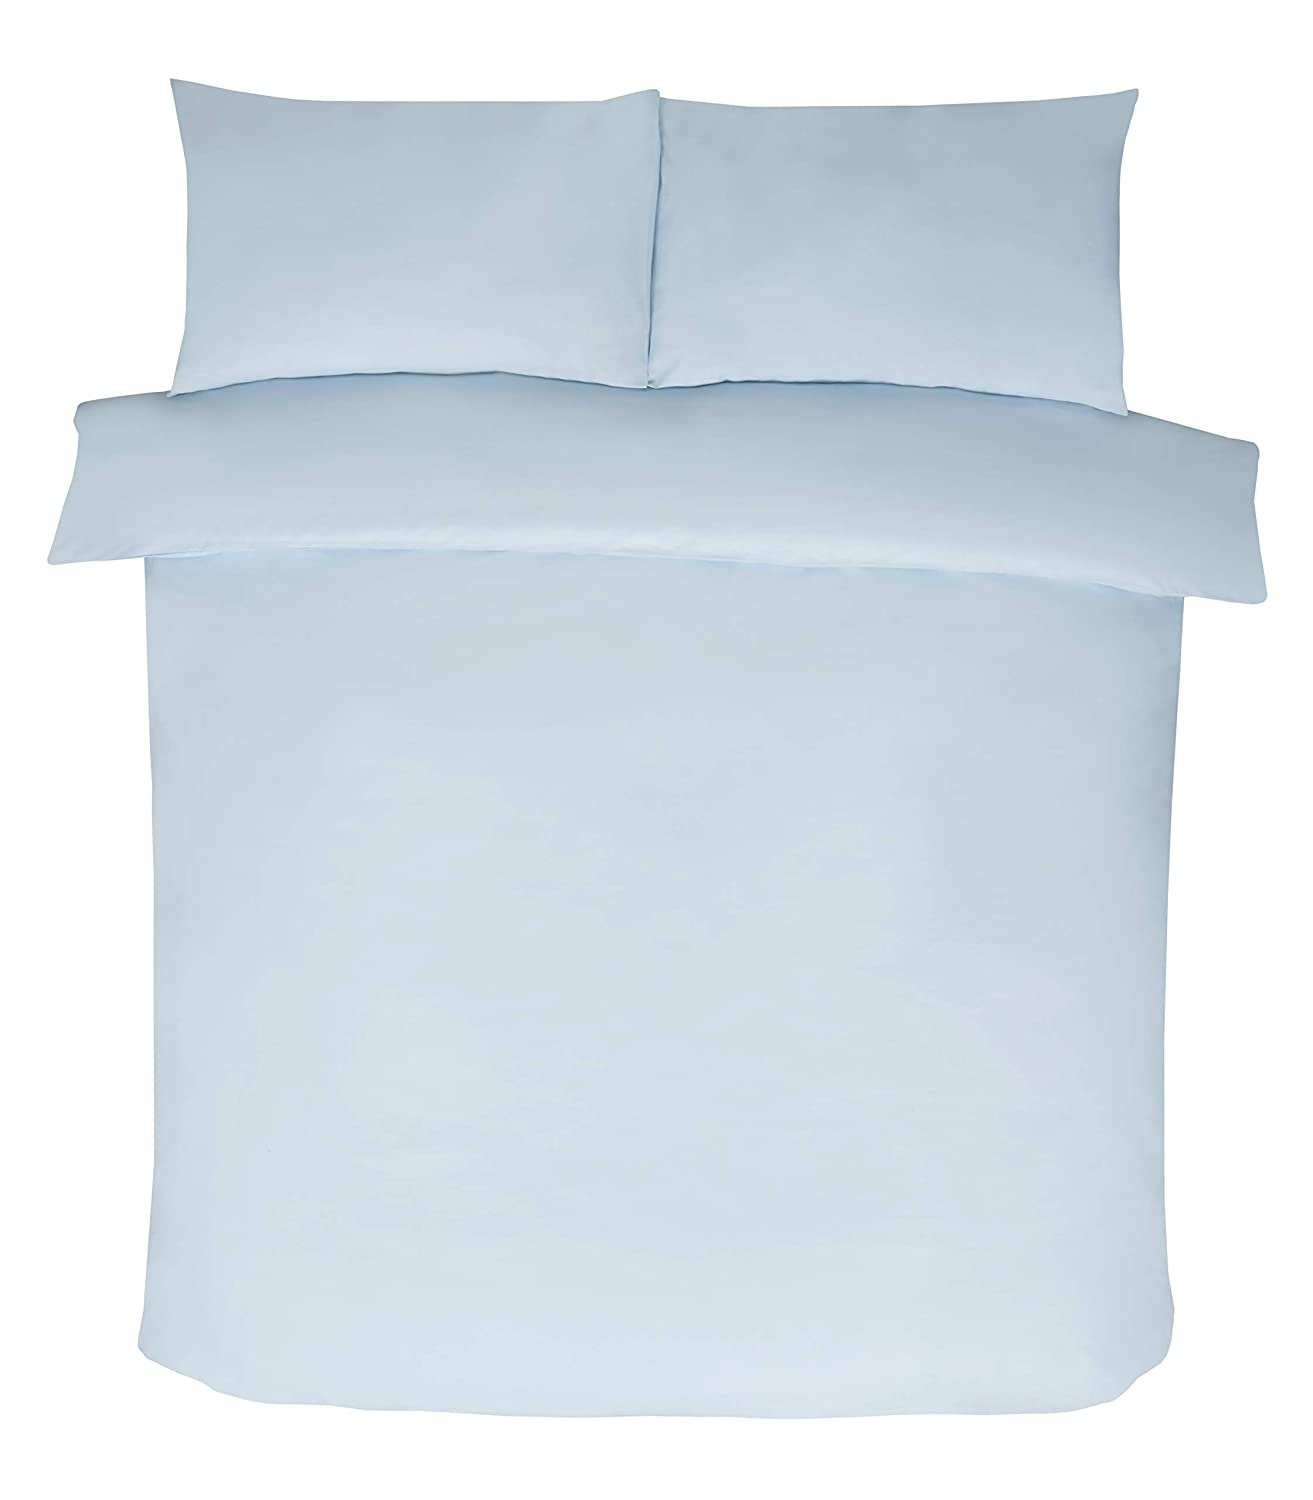 12in Fitted Sheets From Hamilton McBride Polycotton 68 Pick Plain Extra Deep